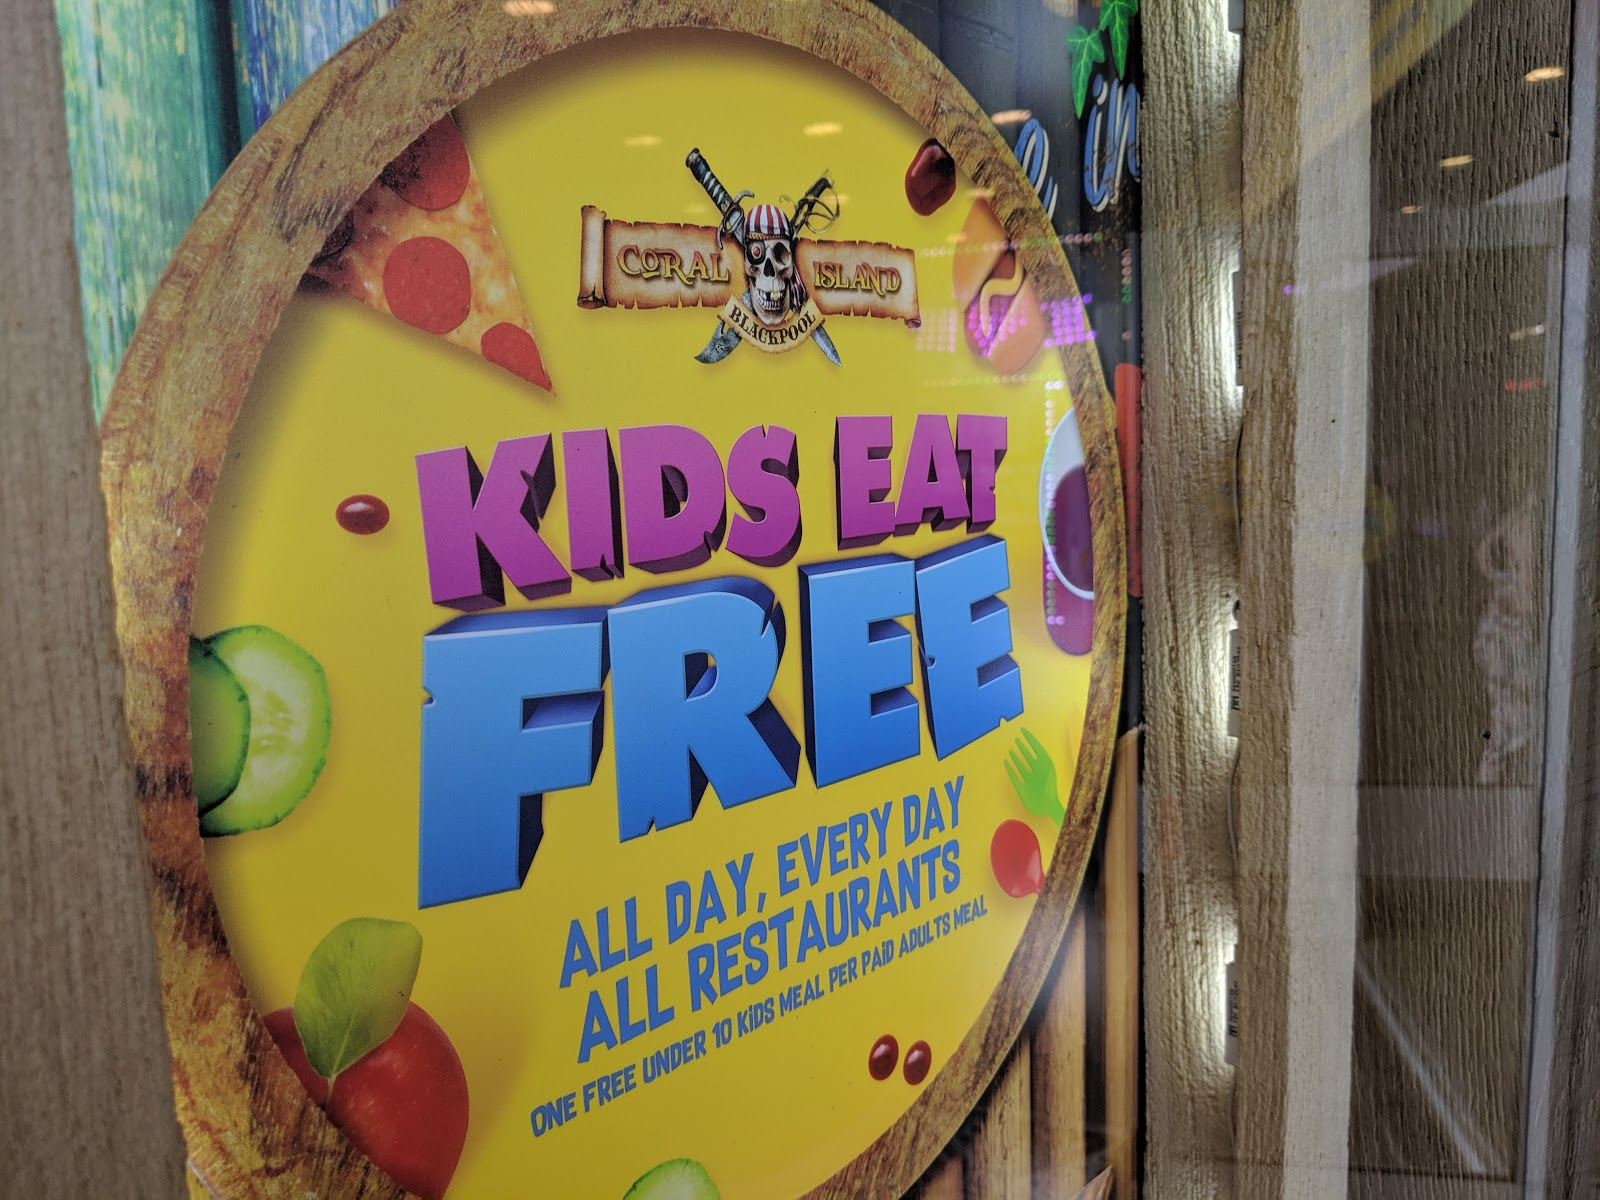 An A-Z Guide to Coral Island, Blackpool  - Kids Eat Free